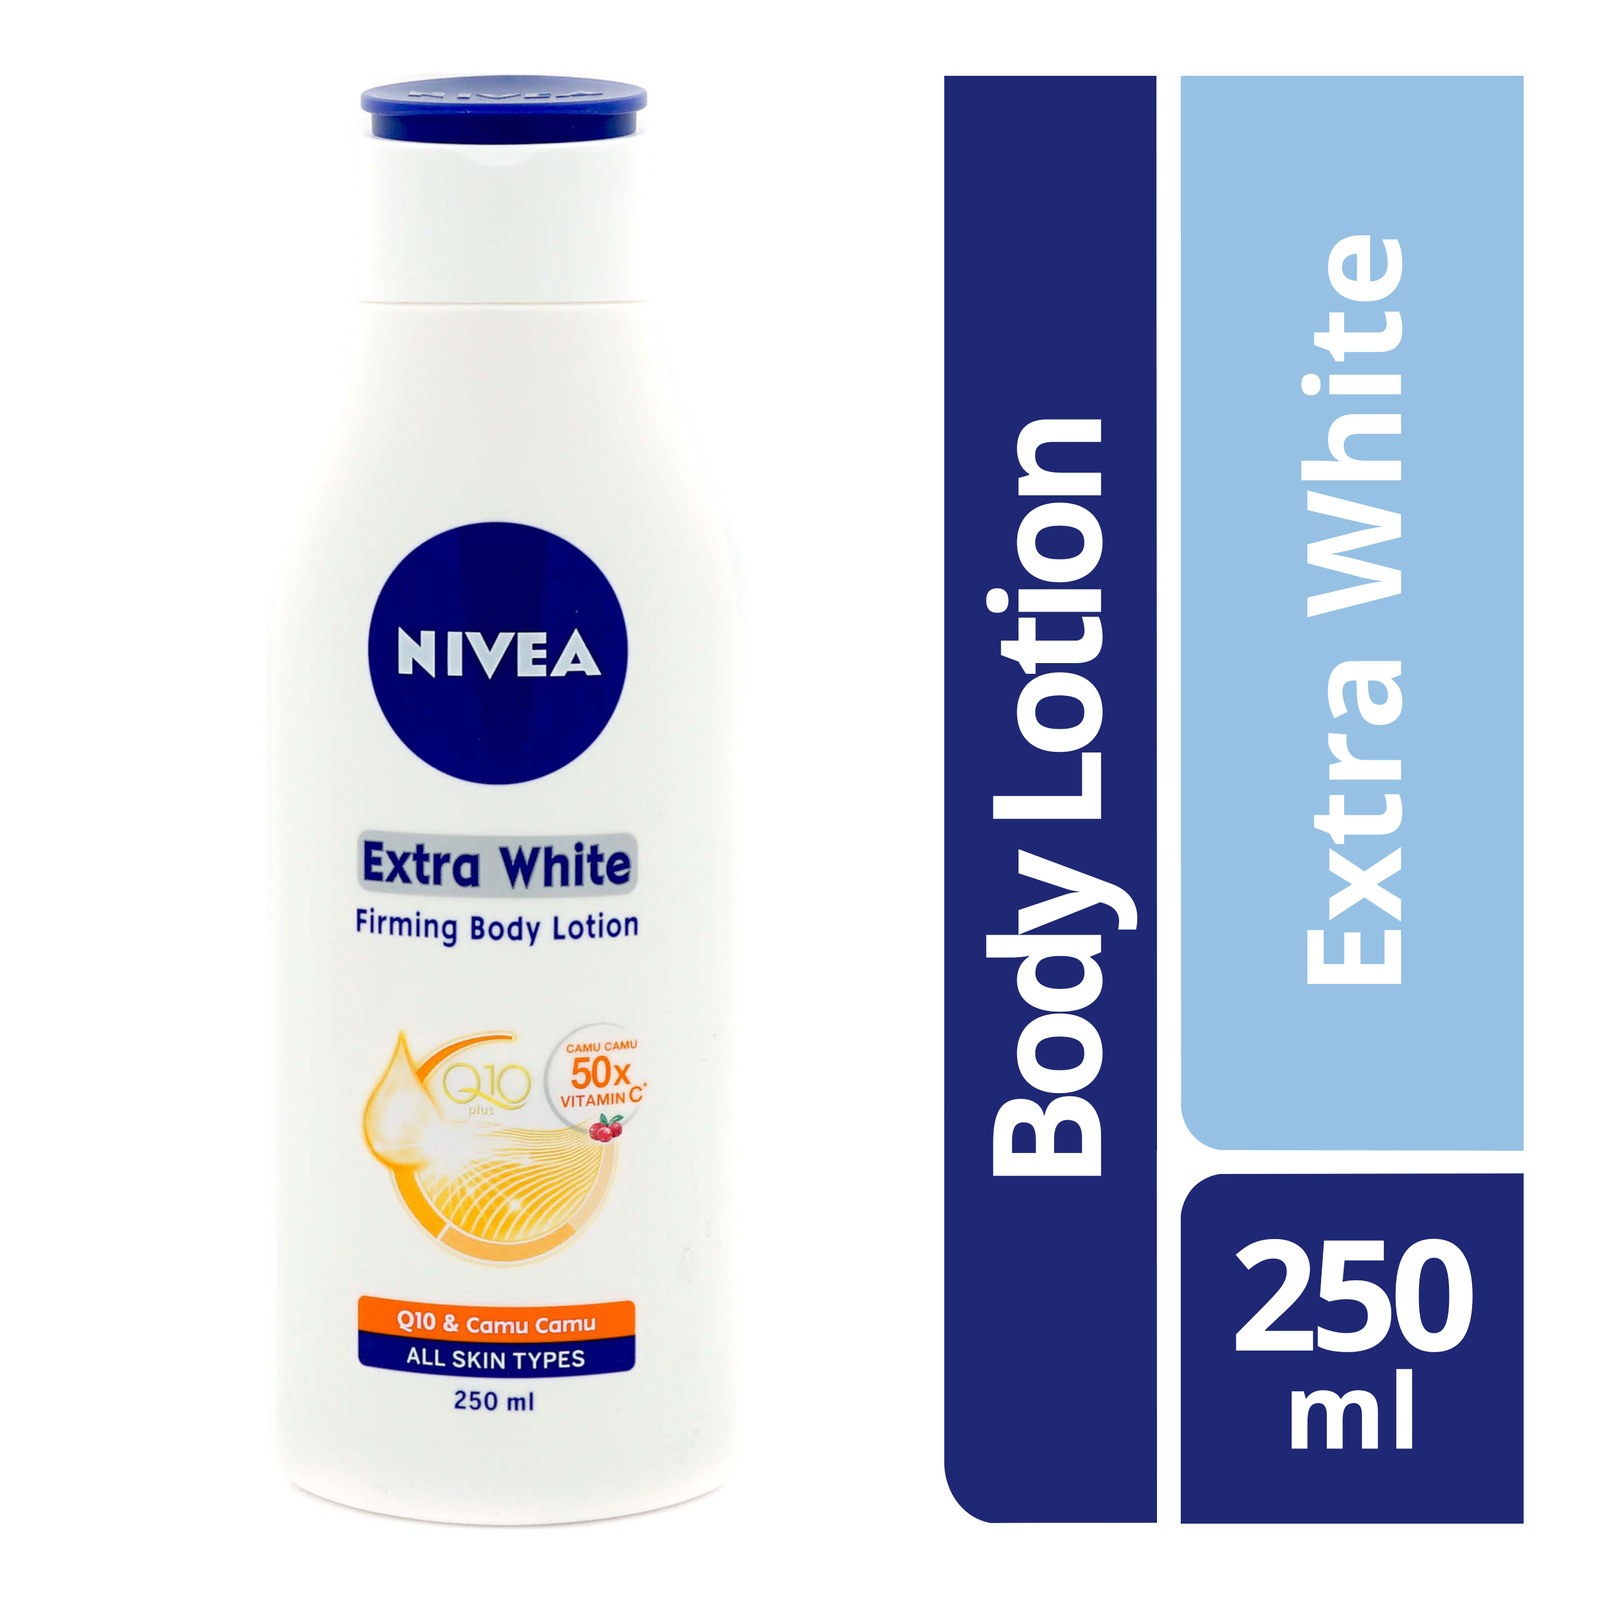 Nivea Body Lotion - Extra White (Firming)